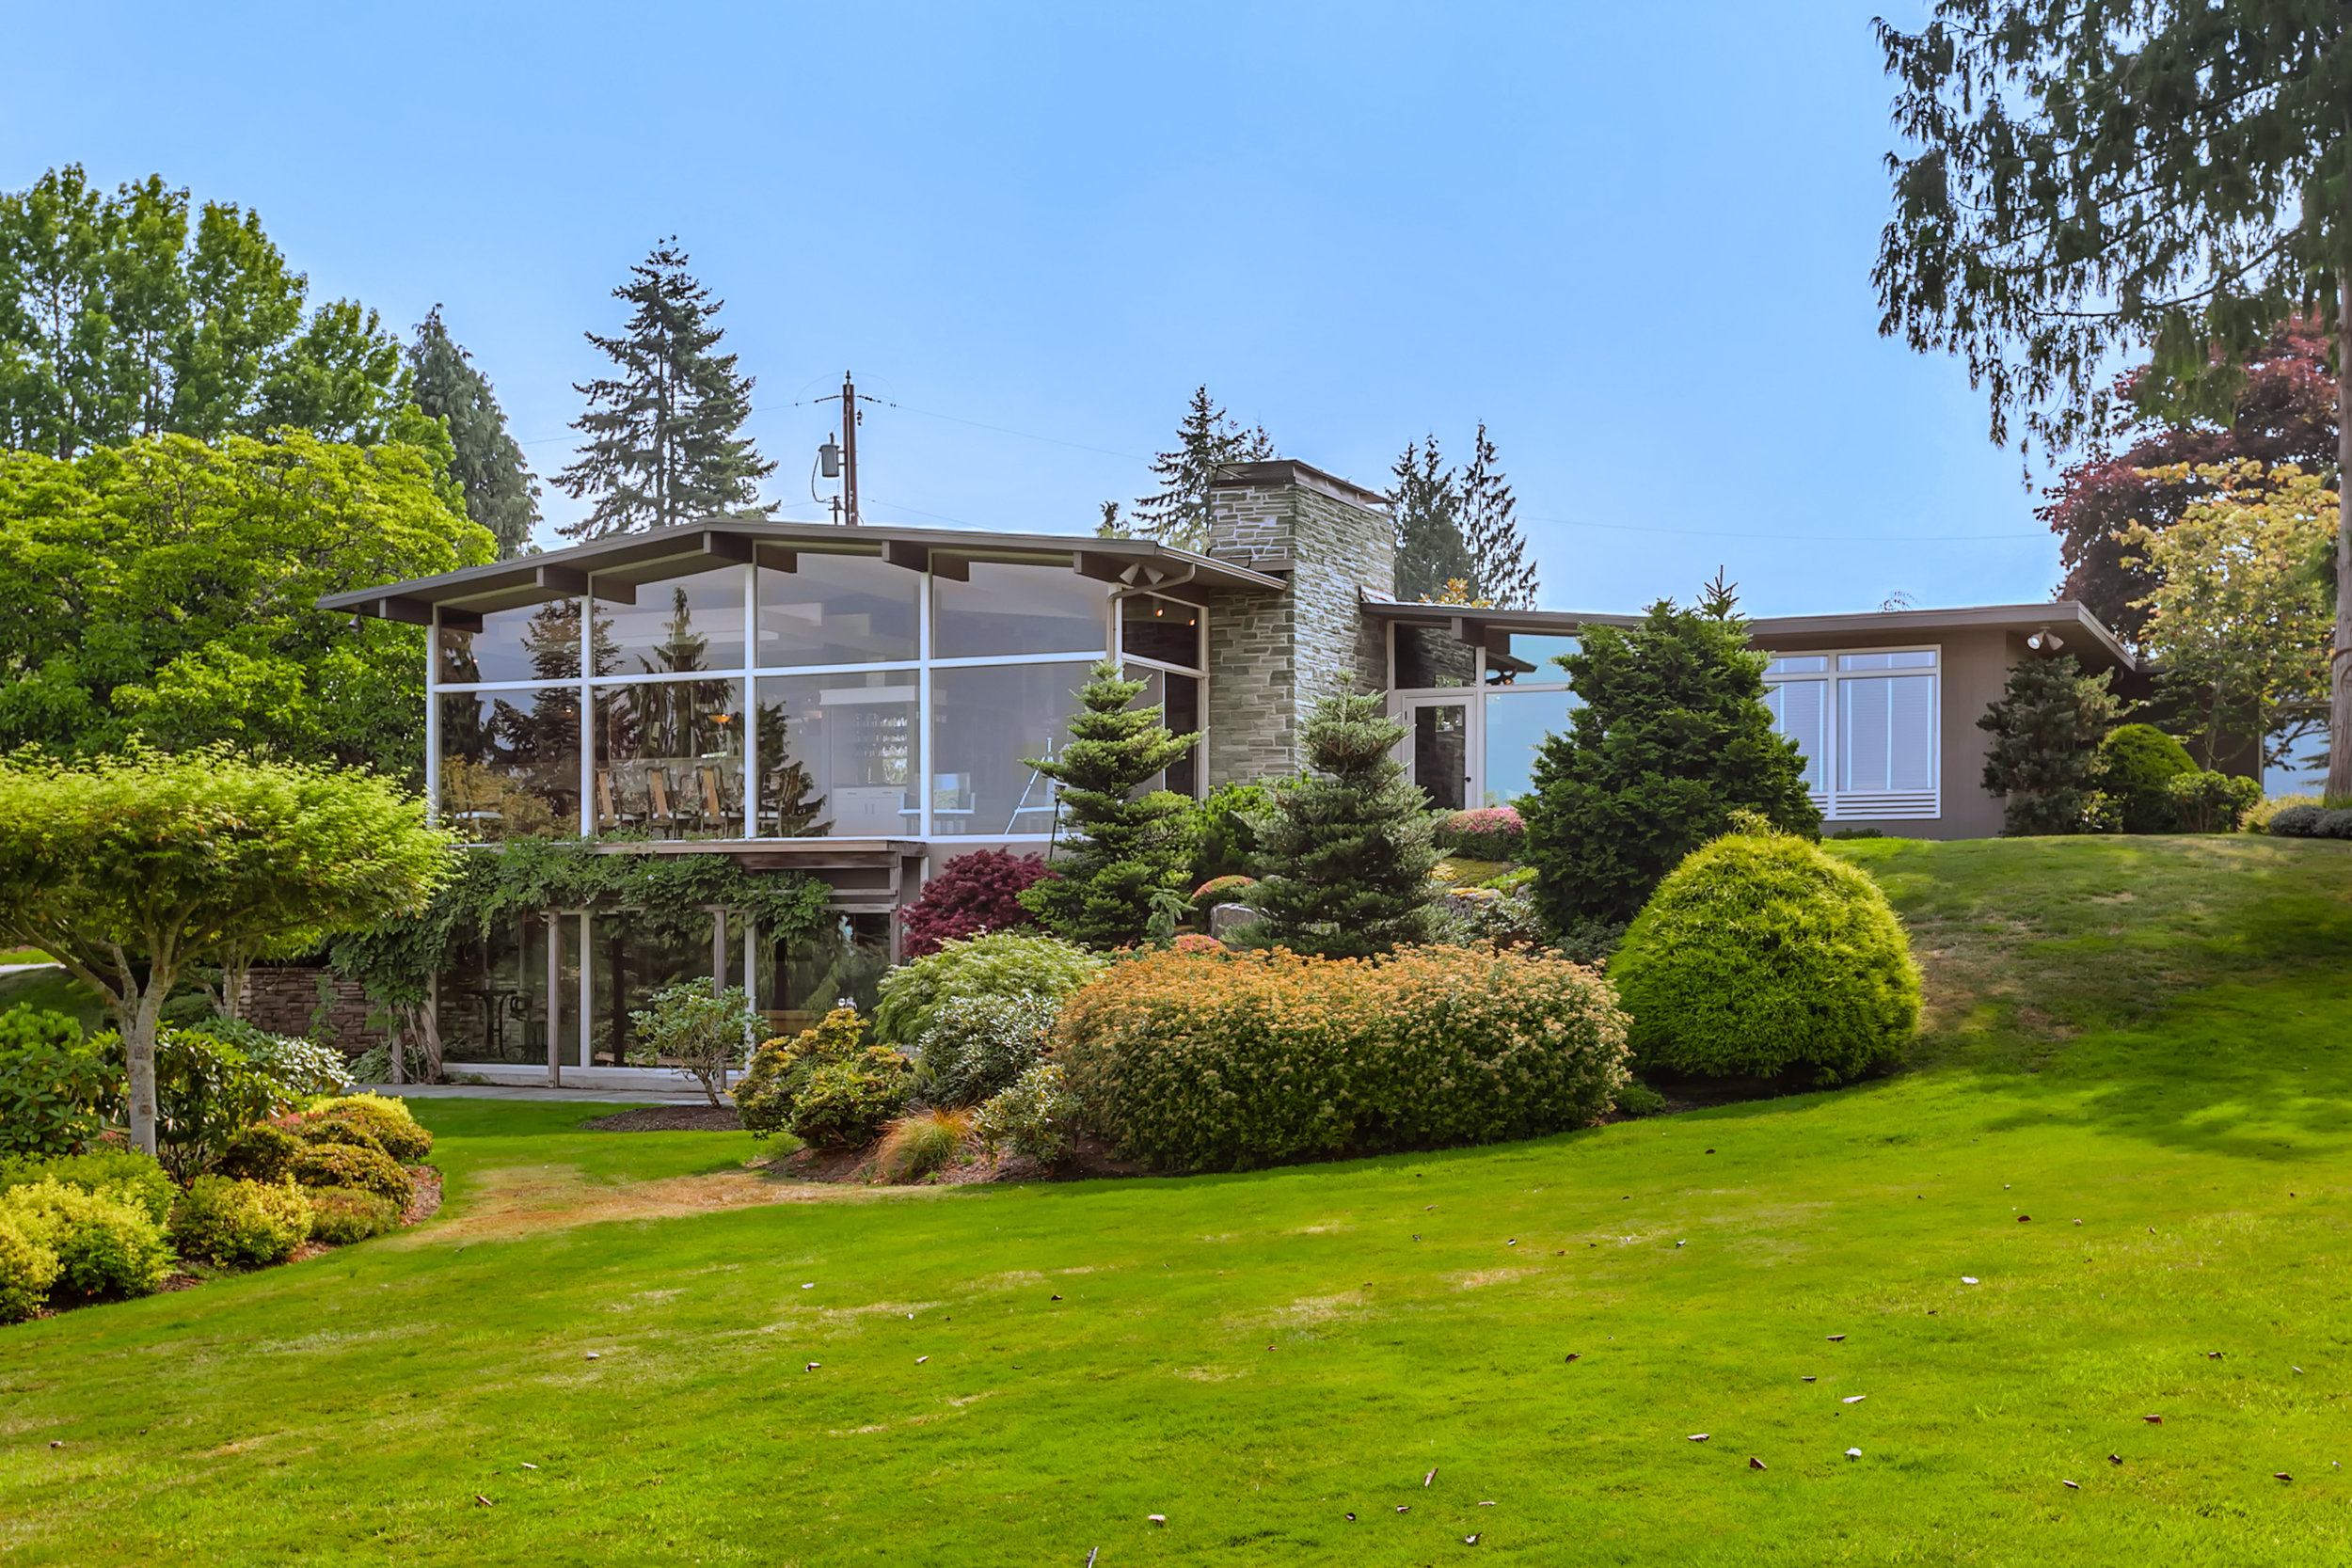 316 Heather Road - Everett, WA // SOLD